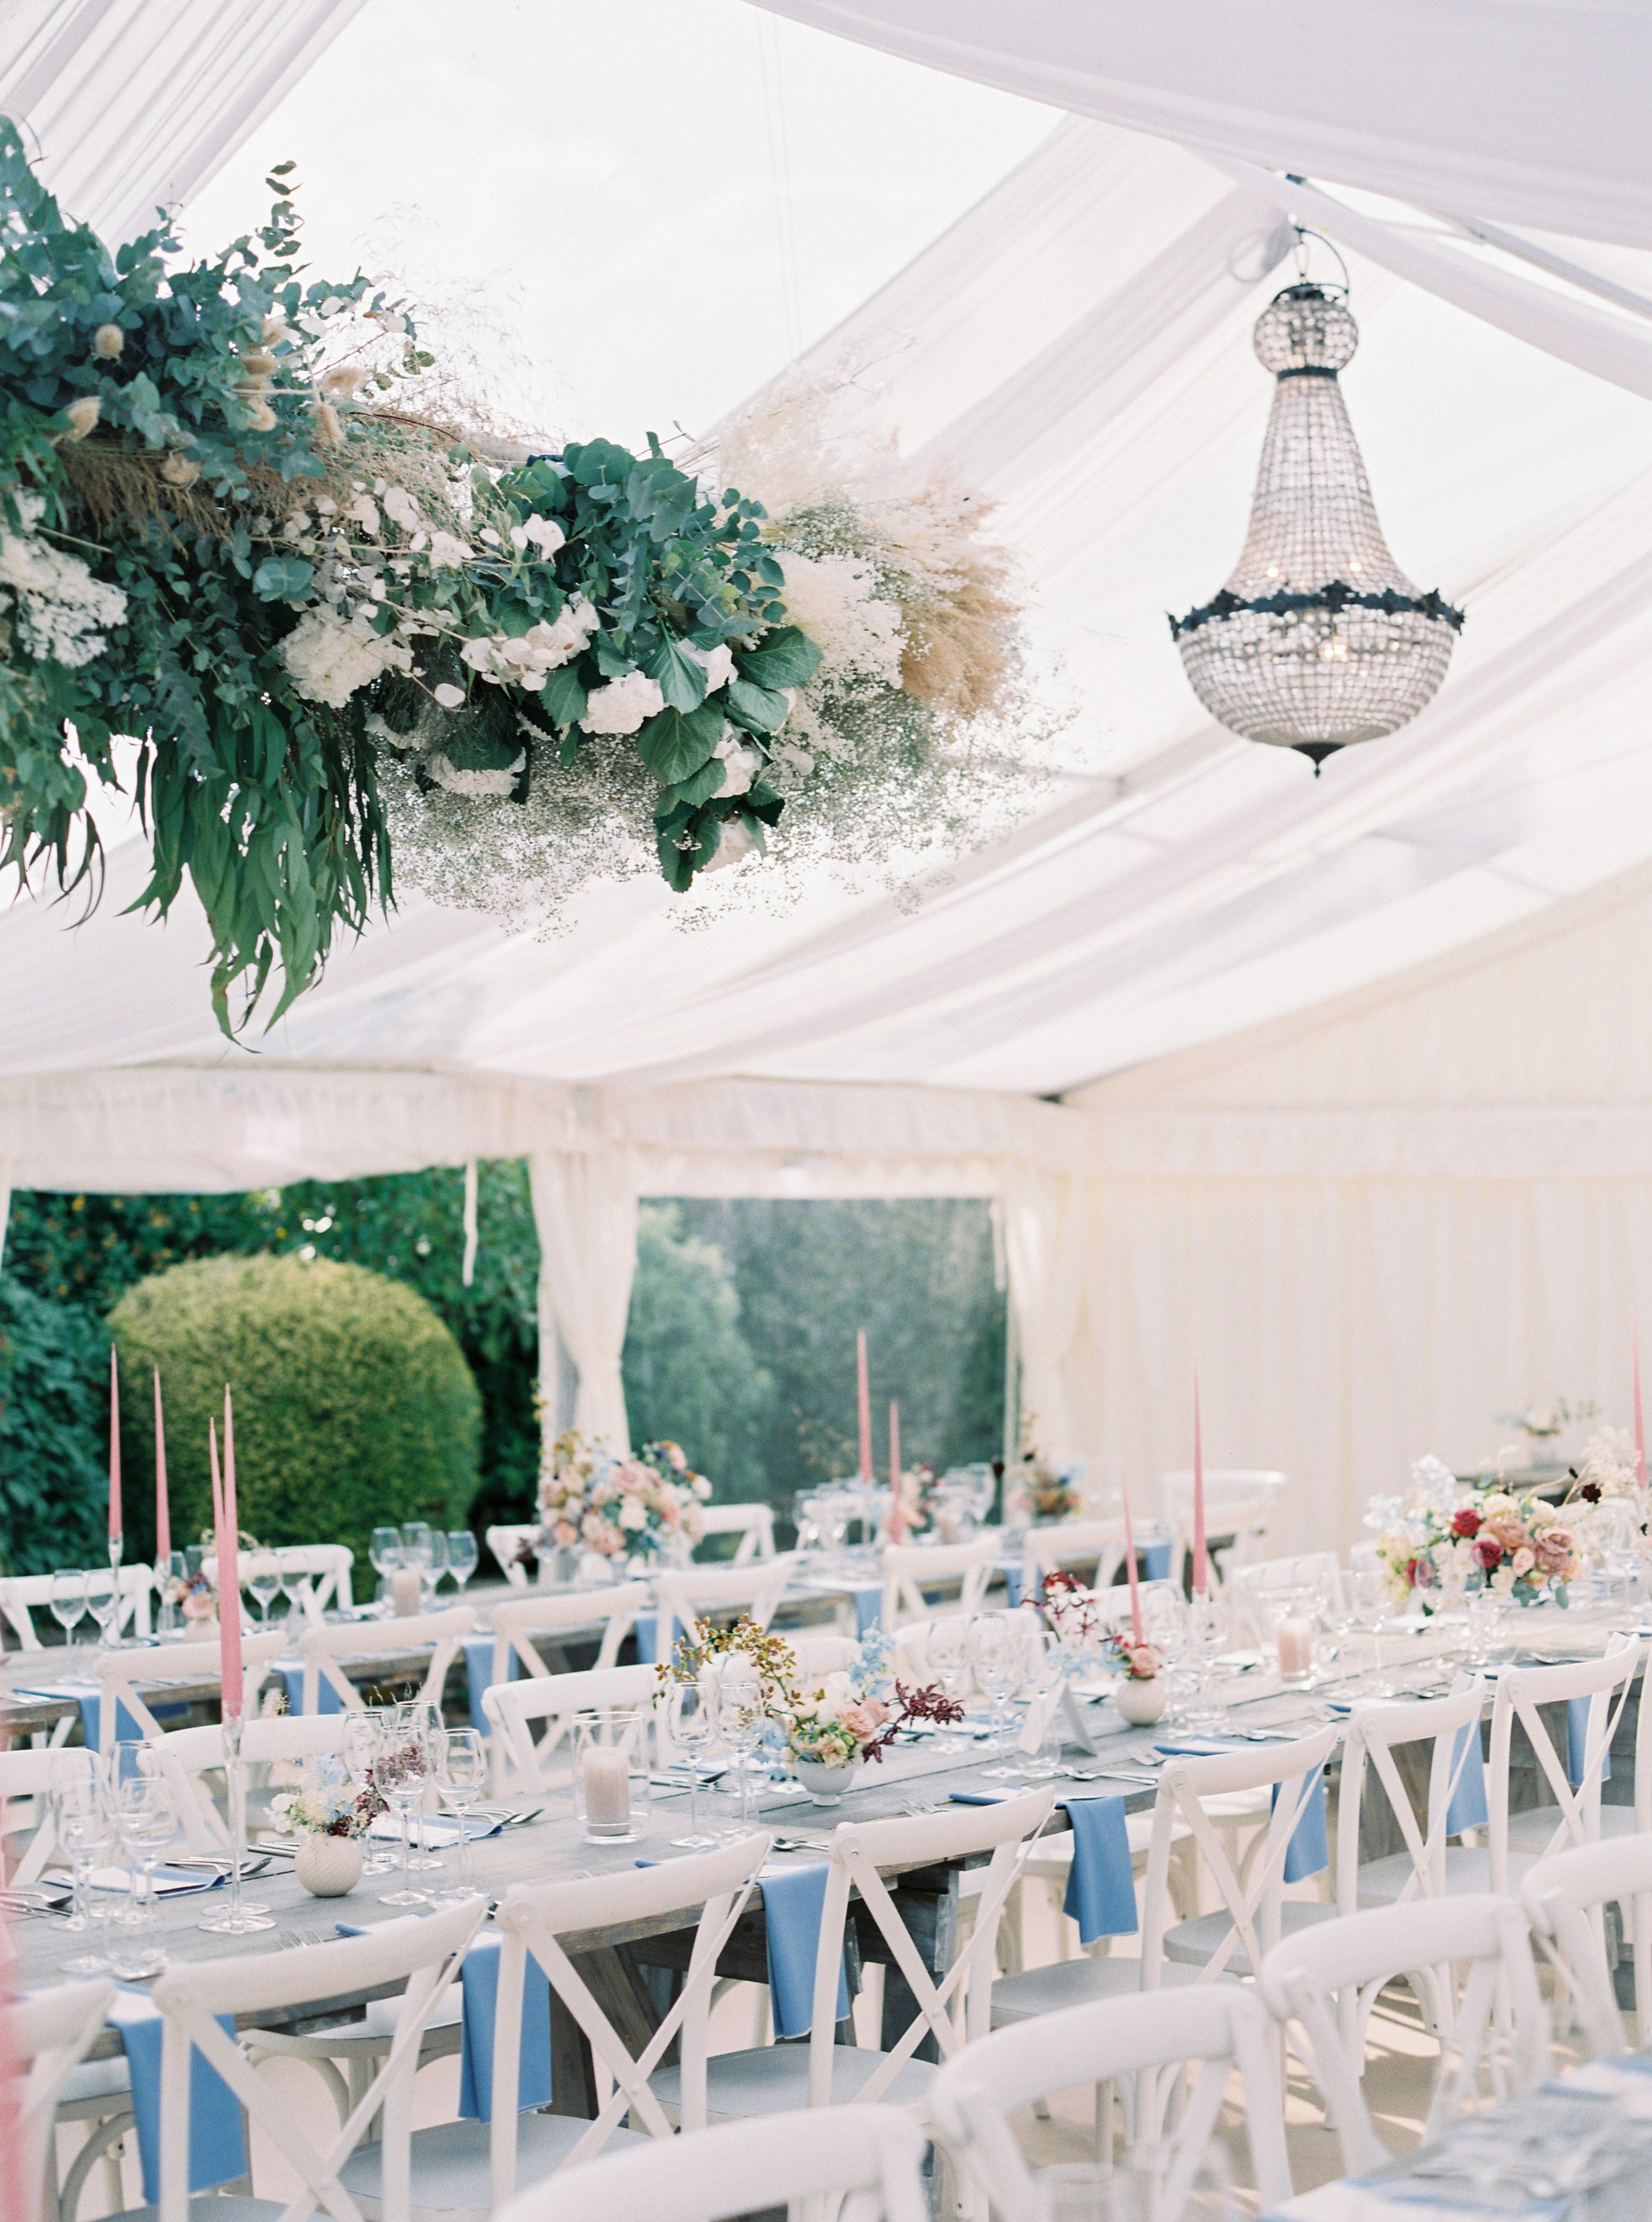 tented reception with long wooden tables, white chairs, chandeliers, and hanging floral arrangements